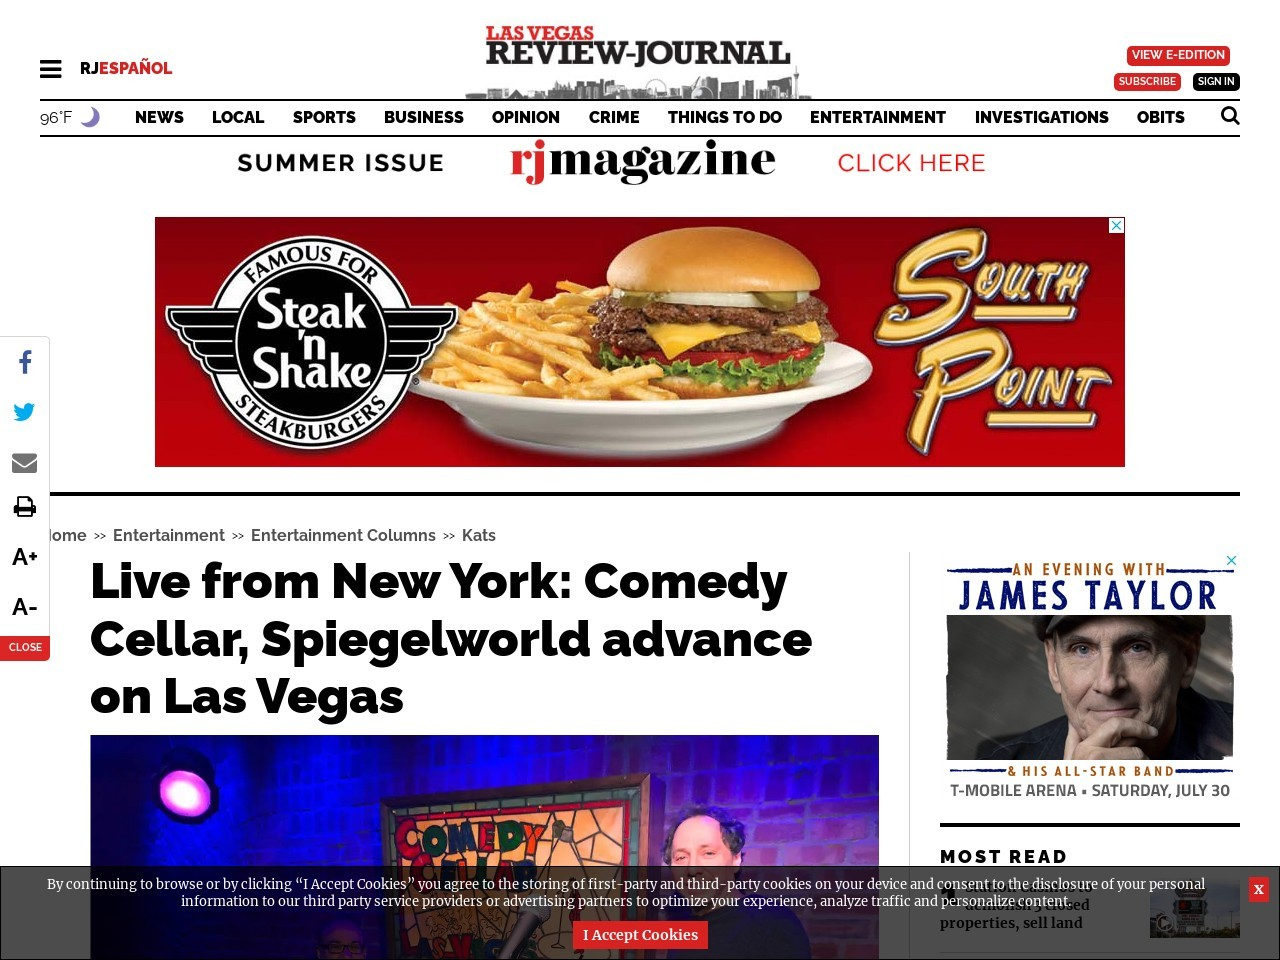 Live from New York: Comedy Cellar, Spiegelworld advance on Las Vegas